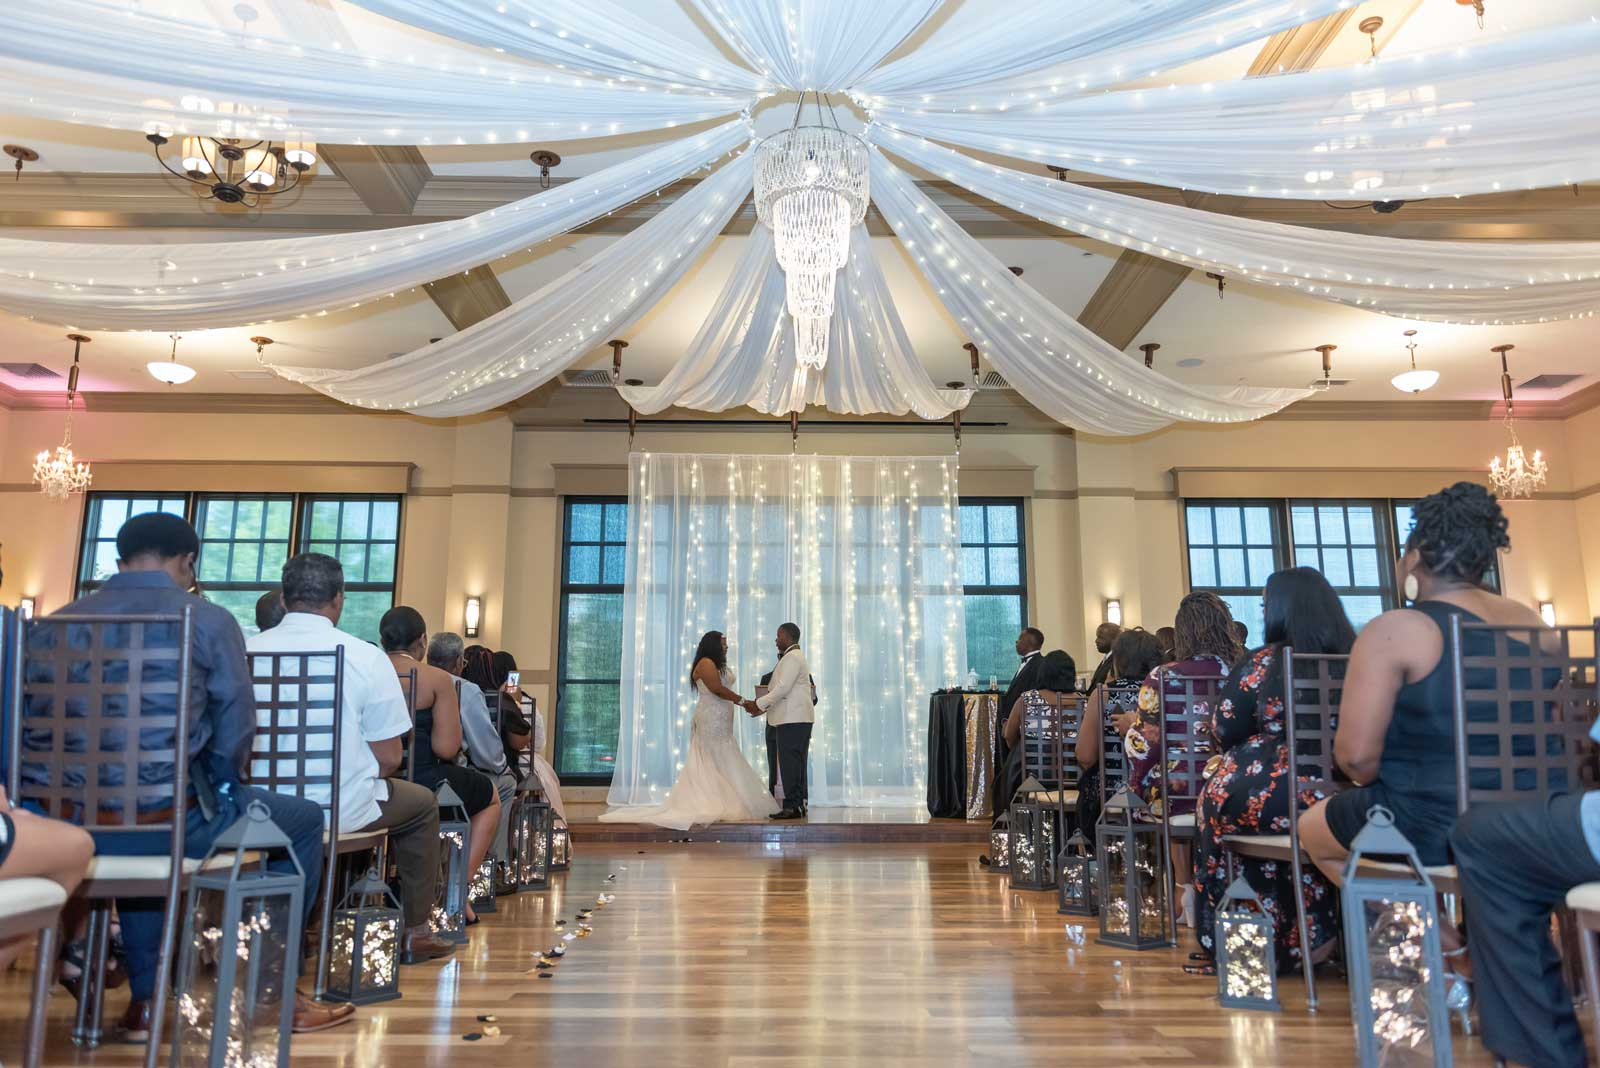 Personalized Service at The Ark provide stunning settings for weddings such as this one.